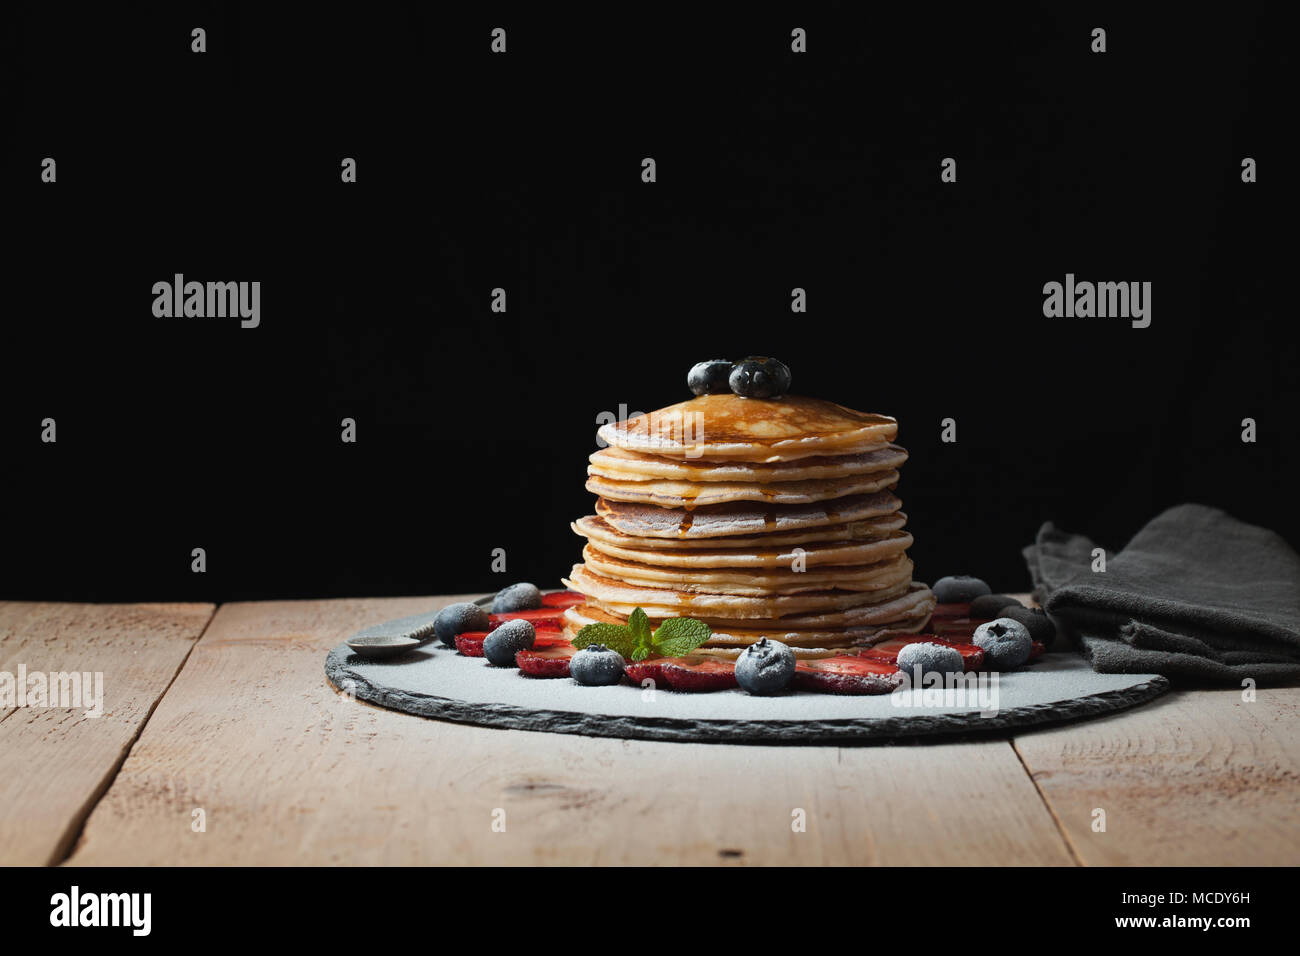 Front view of Stack of homemade plain pancakes with strawberries, blueberries and maple syrup served on black plate on black background with selective - Stock Image